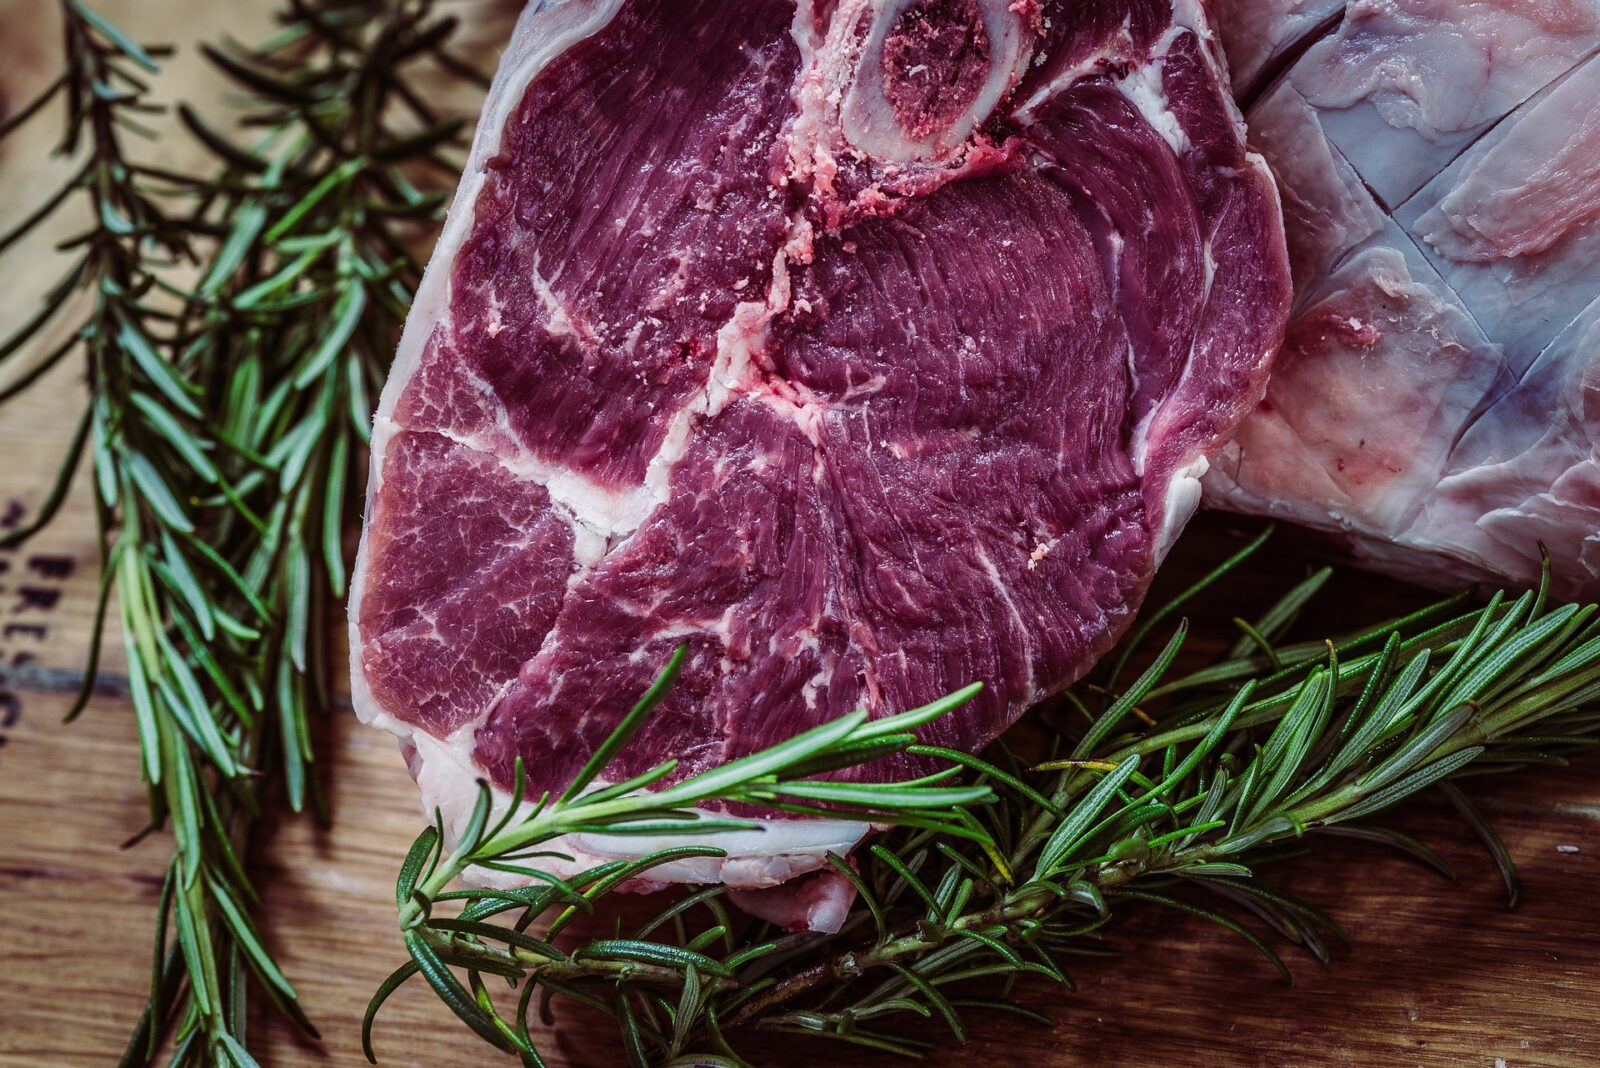 image of raw steak and herbs on board